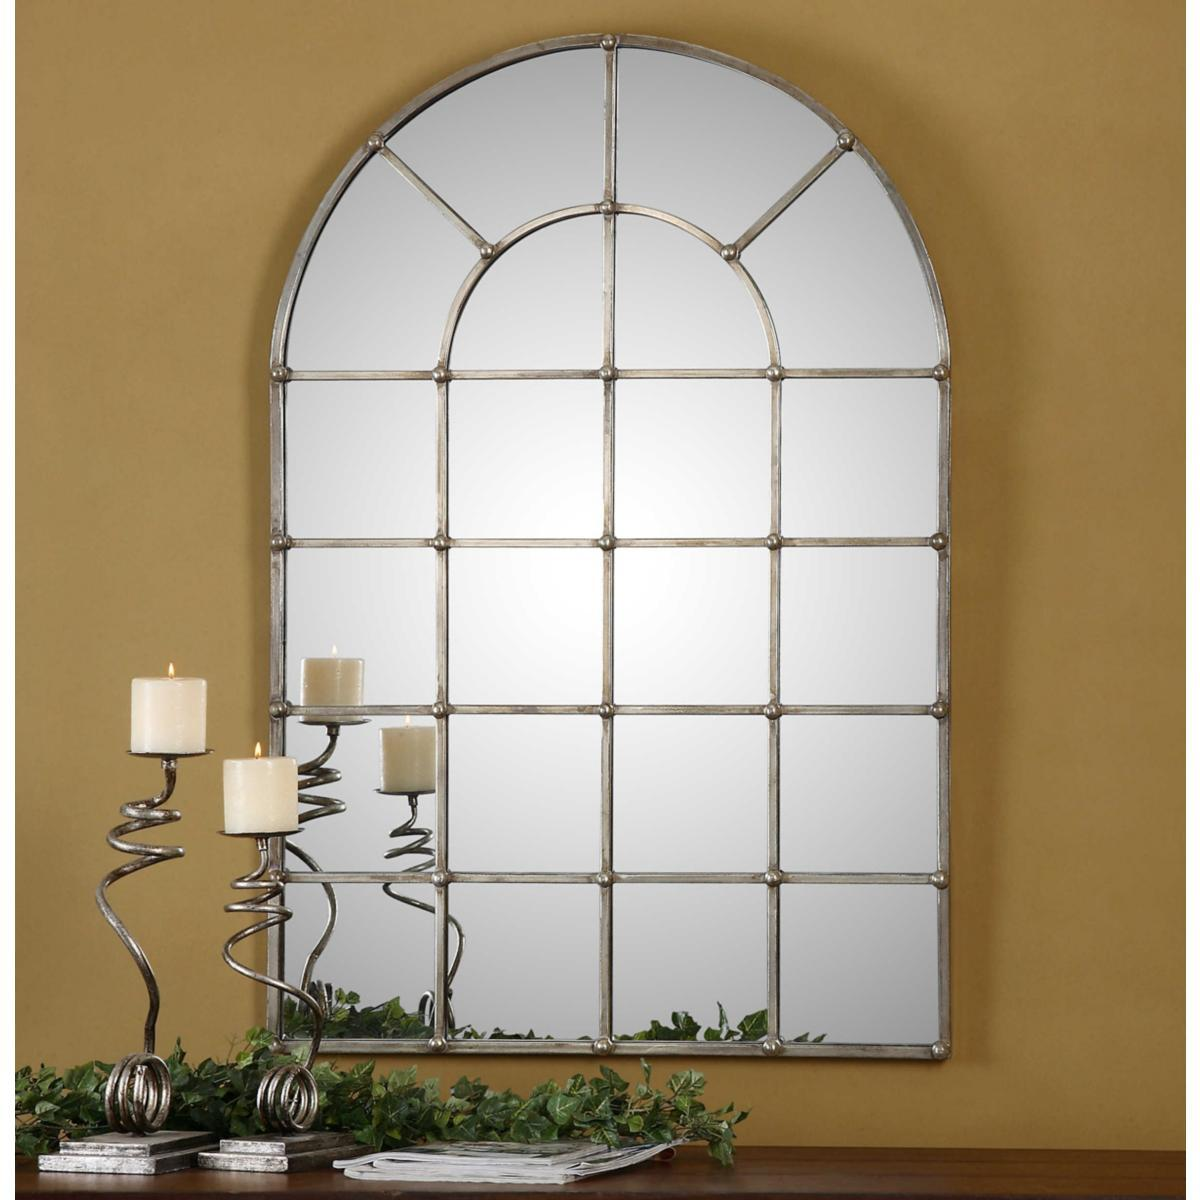 A picture containing indoor, window  Description automatically generated